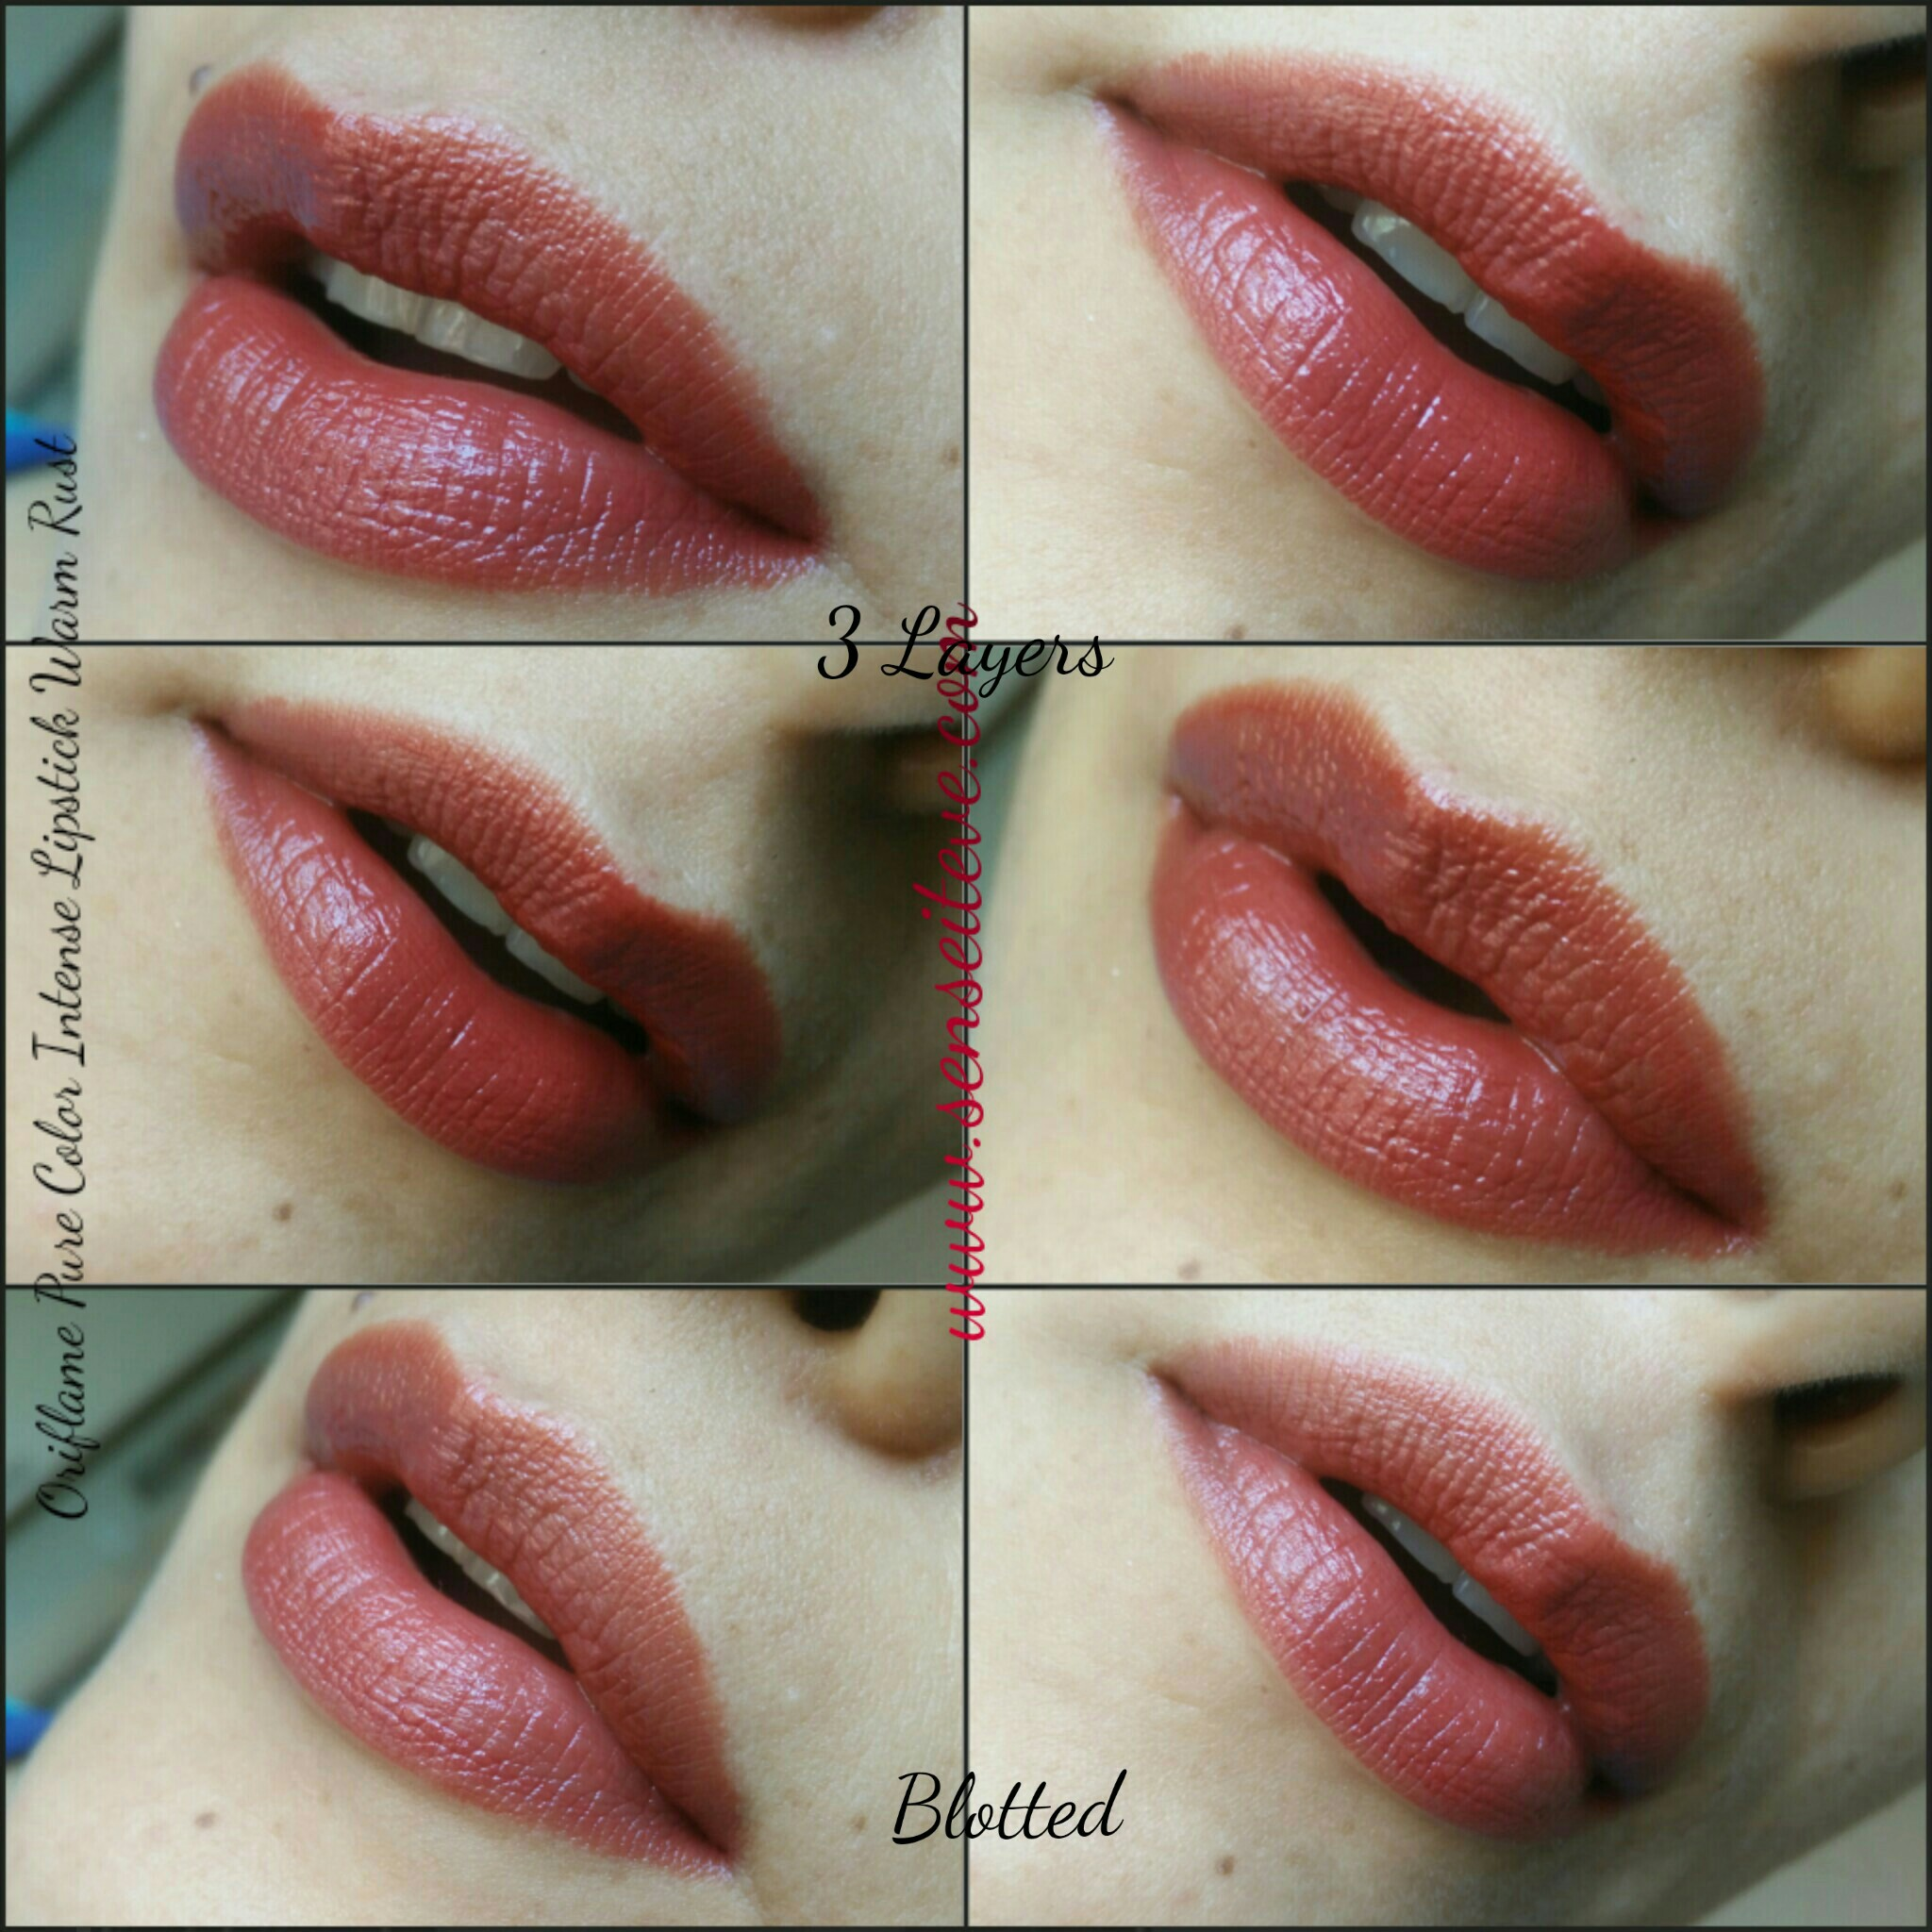 Oriflame Pure Color Intense Lipstick Warm Rust Swatches 26659